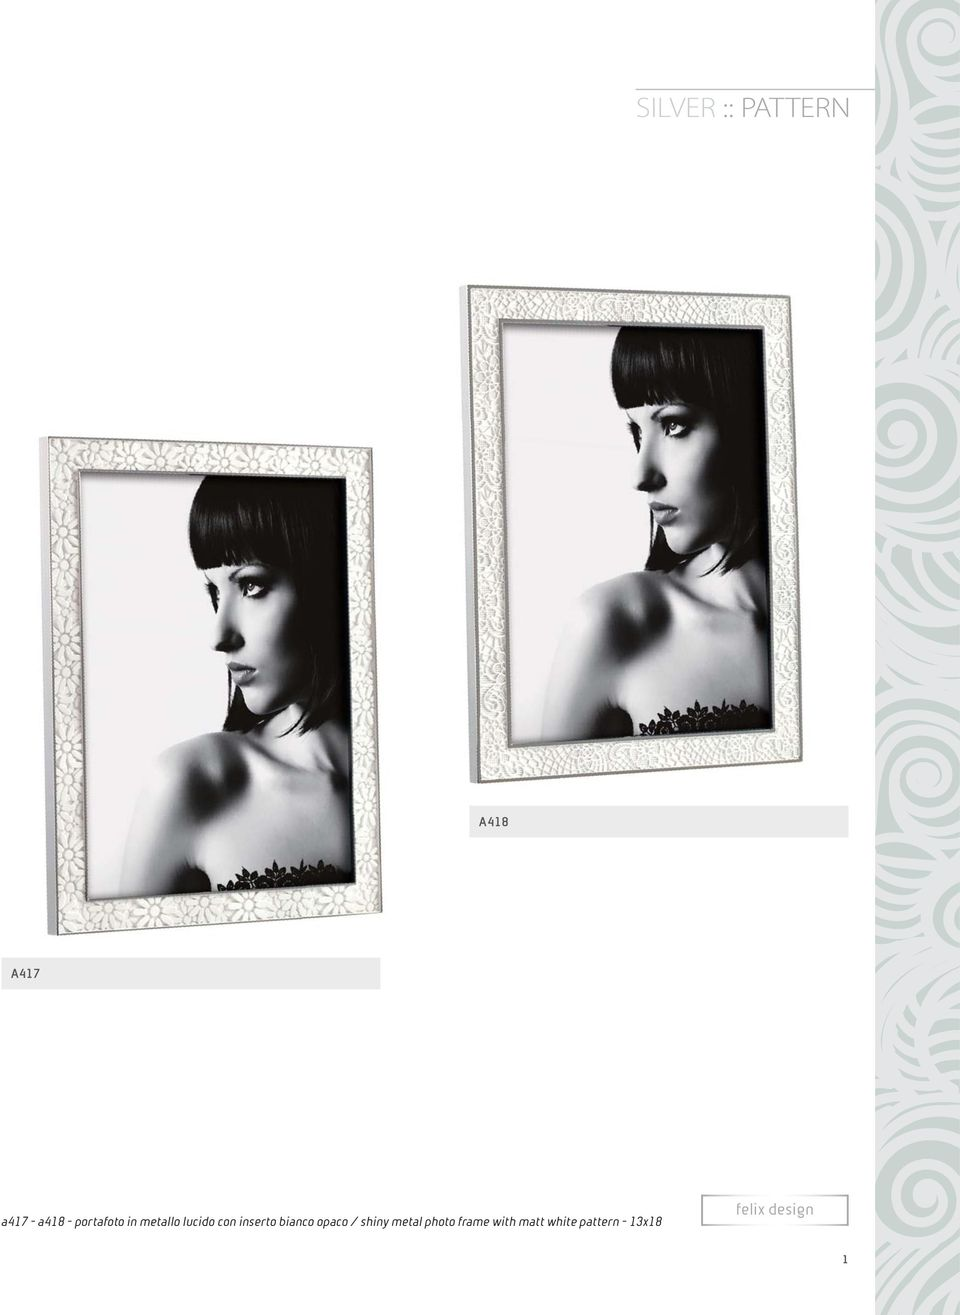 bianco opaco / shiny metal photo frame